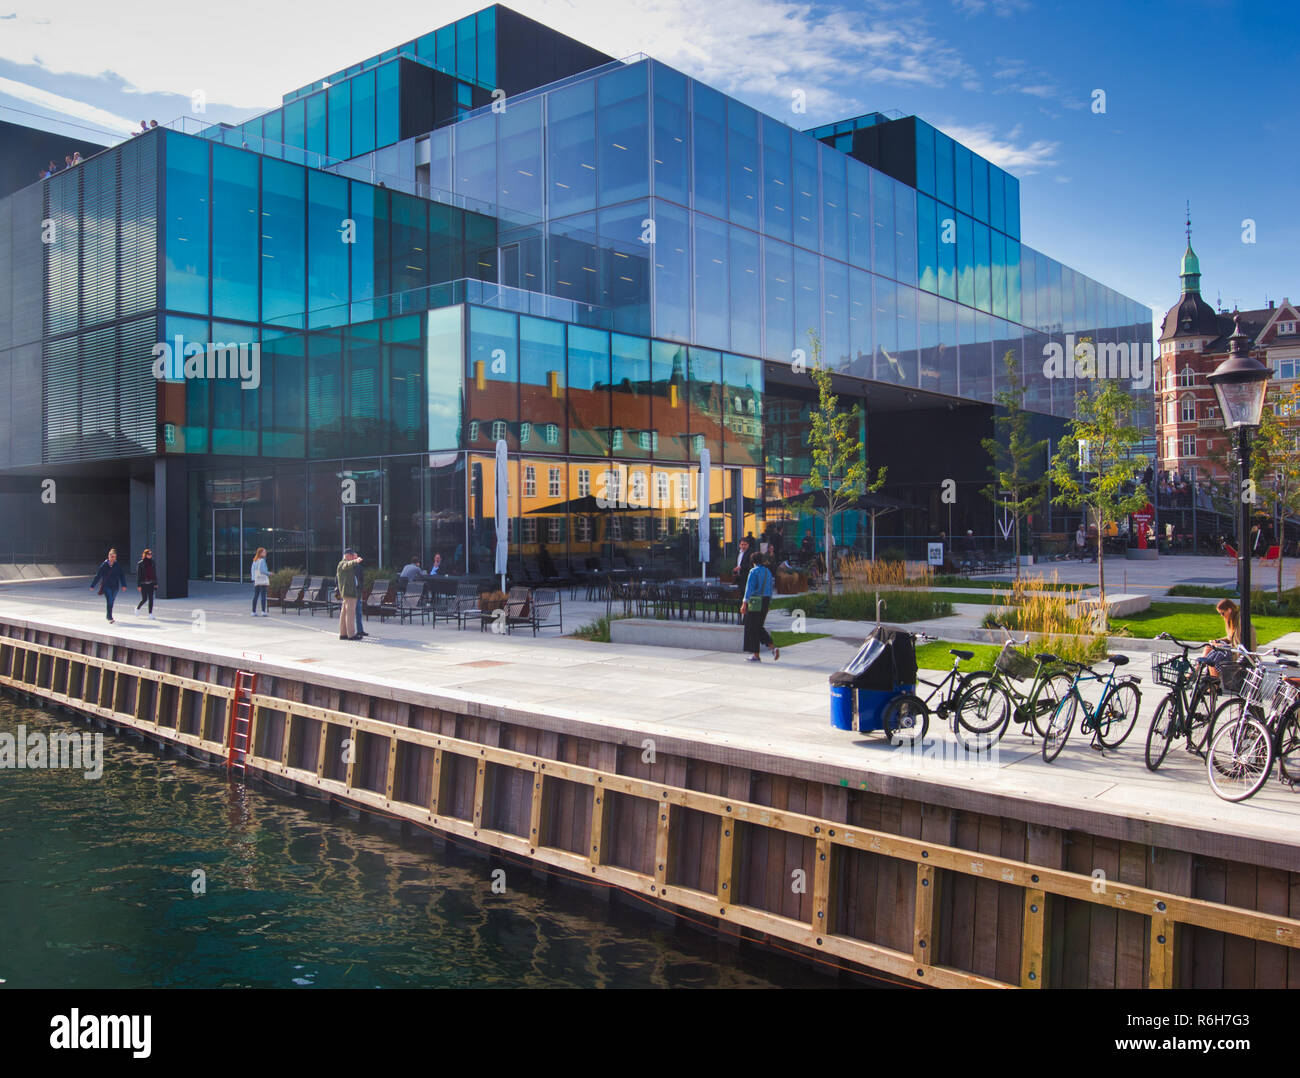 Danish Architecture Center (DAC), Copenhagen, Denmark, Scandinavia - Stock Image